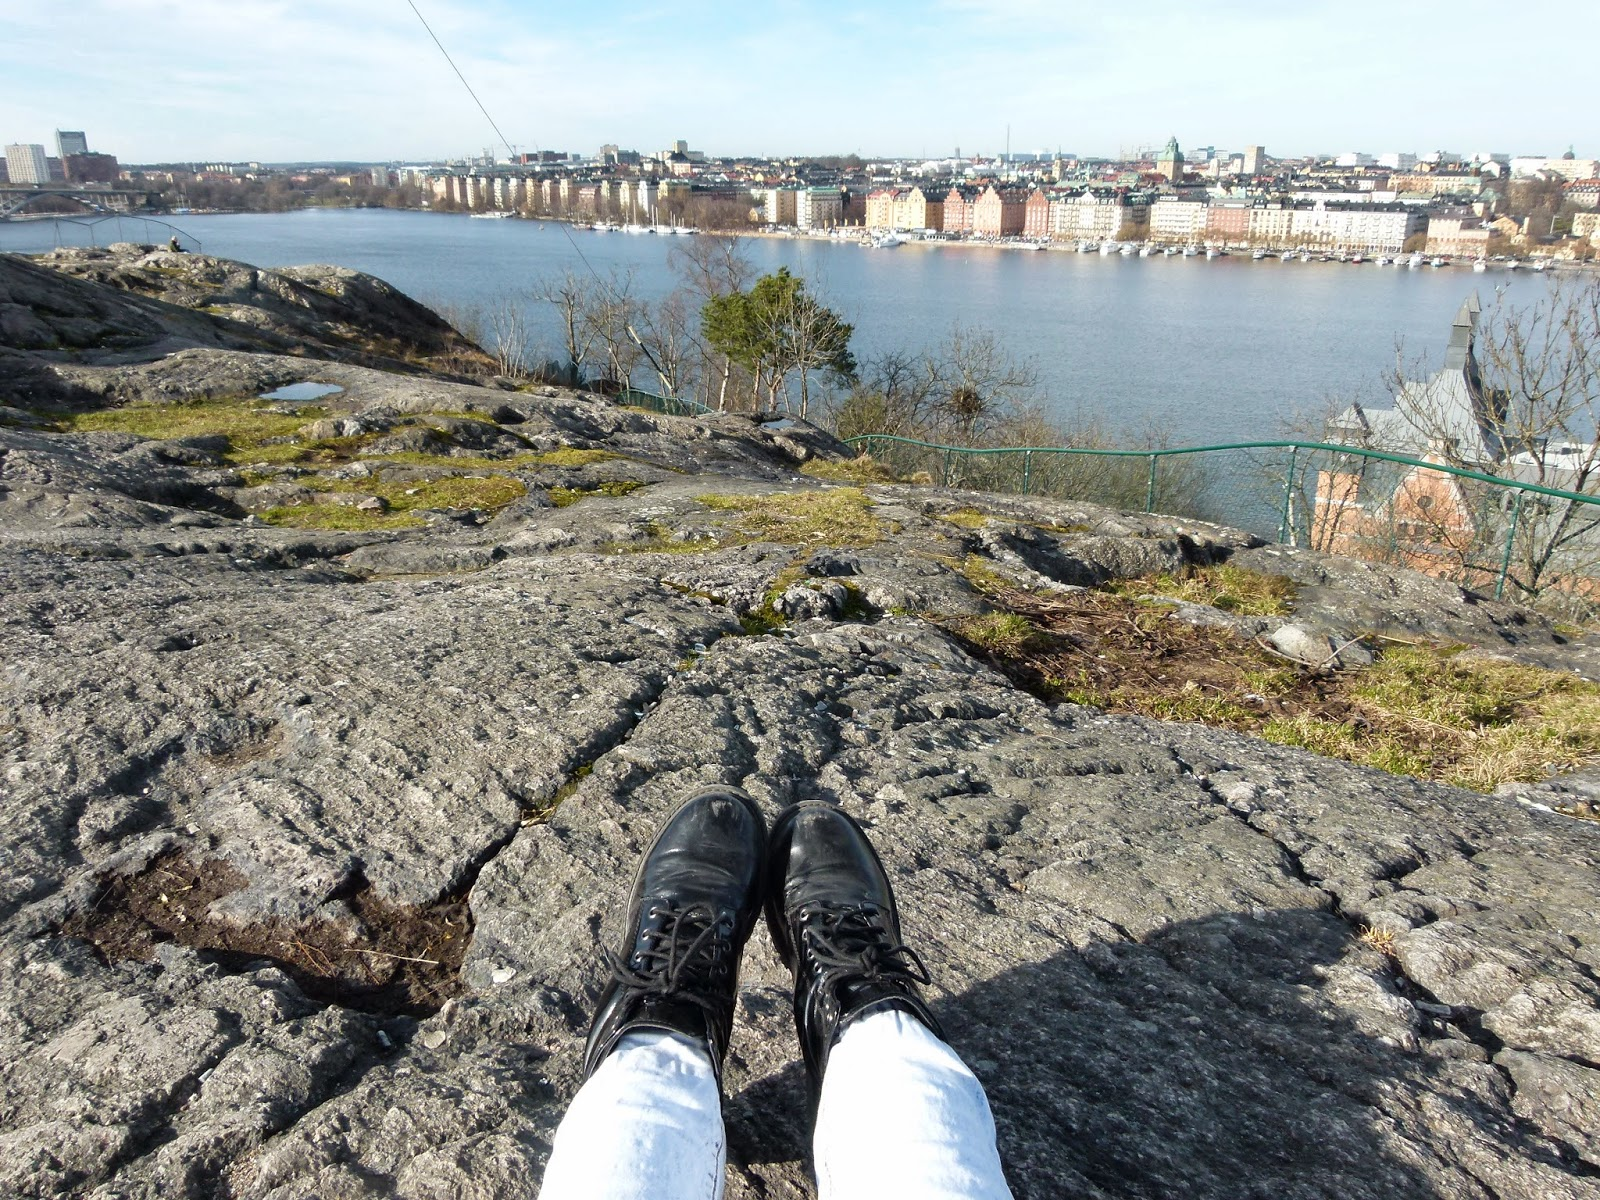 Skinnarviksberget - View on the city and Lake Mälaren from above in Södermalm